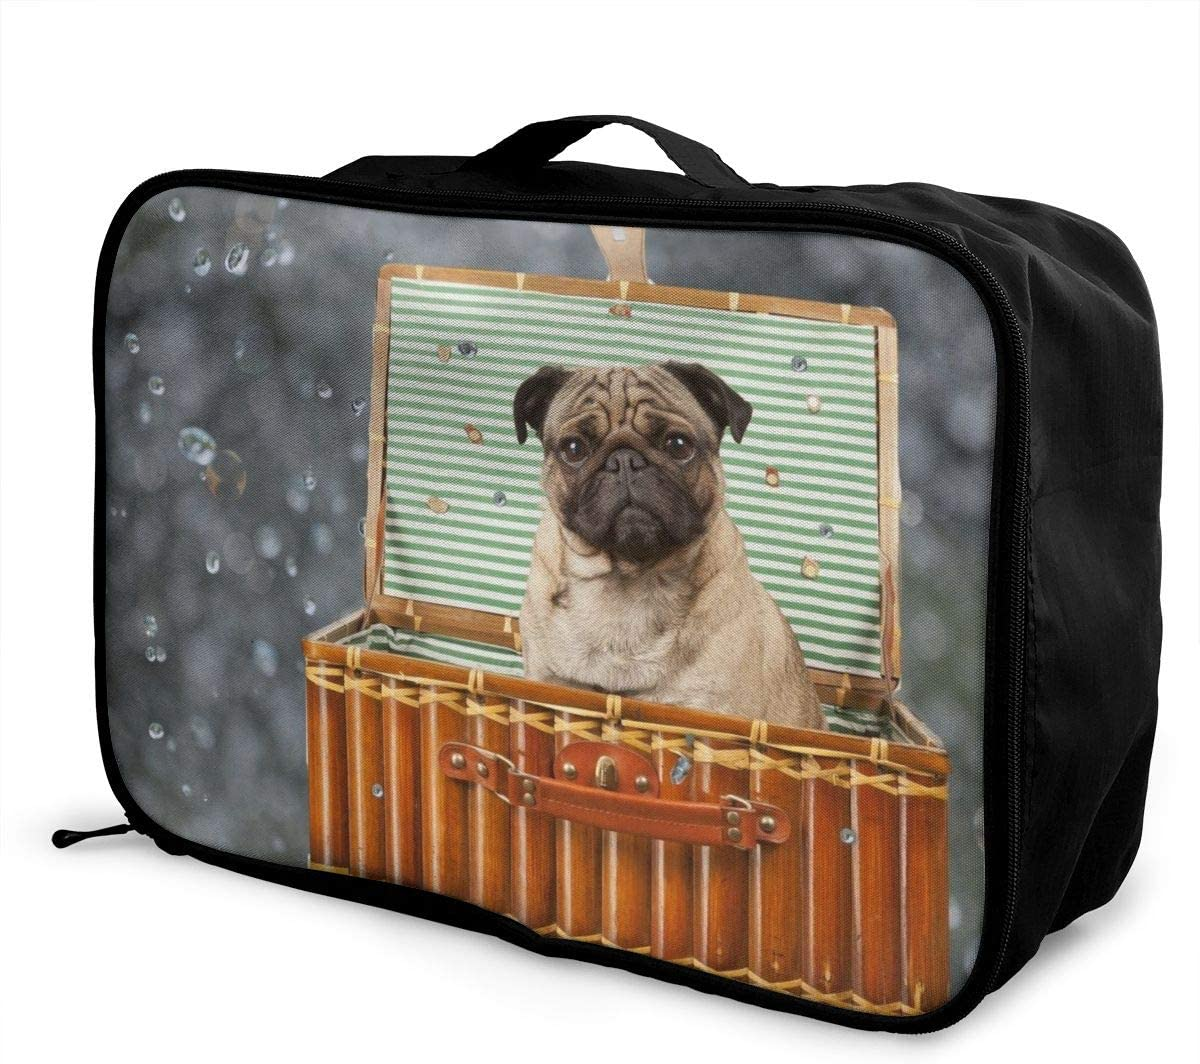 Yunshm Cute Dog Sitting In The Basket Personalized Trolley Handbag Waterproof Unisex Large Capacity For Business Travel Storage